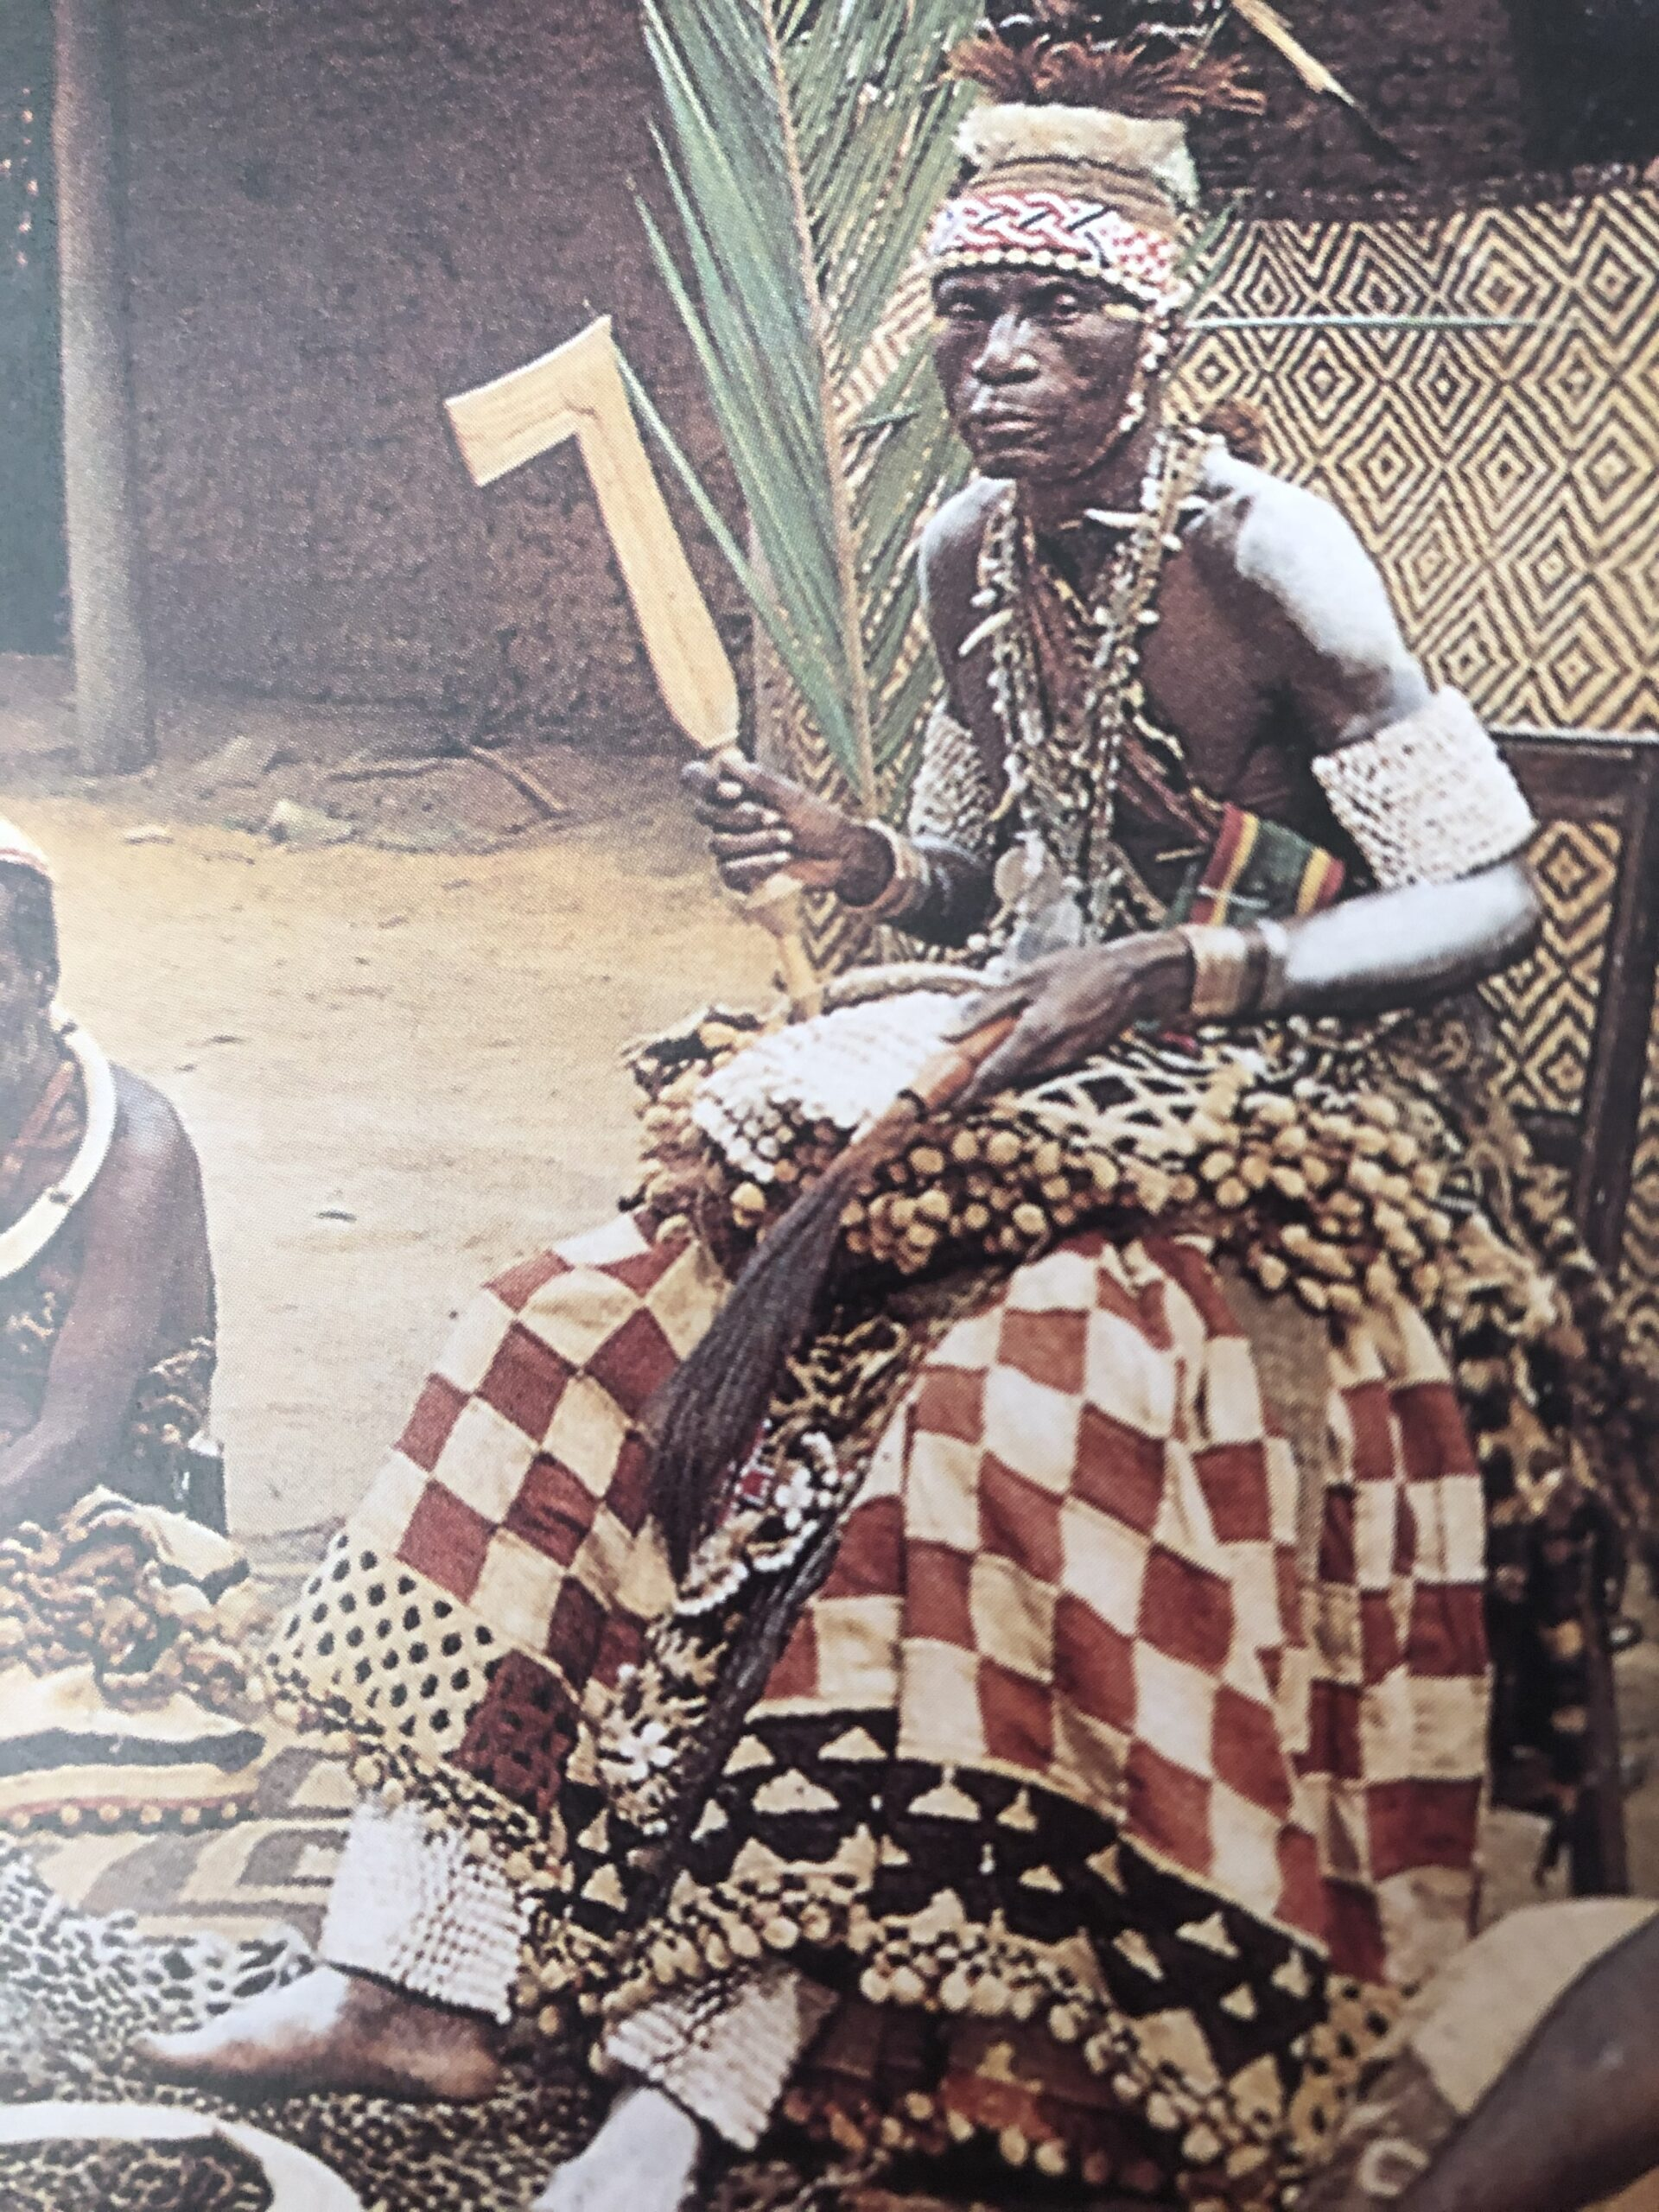 THE MATERIALS & PROCESSES RELATED TO THE CULTURAL TEXTILES OF AFRICA